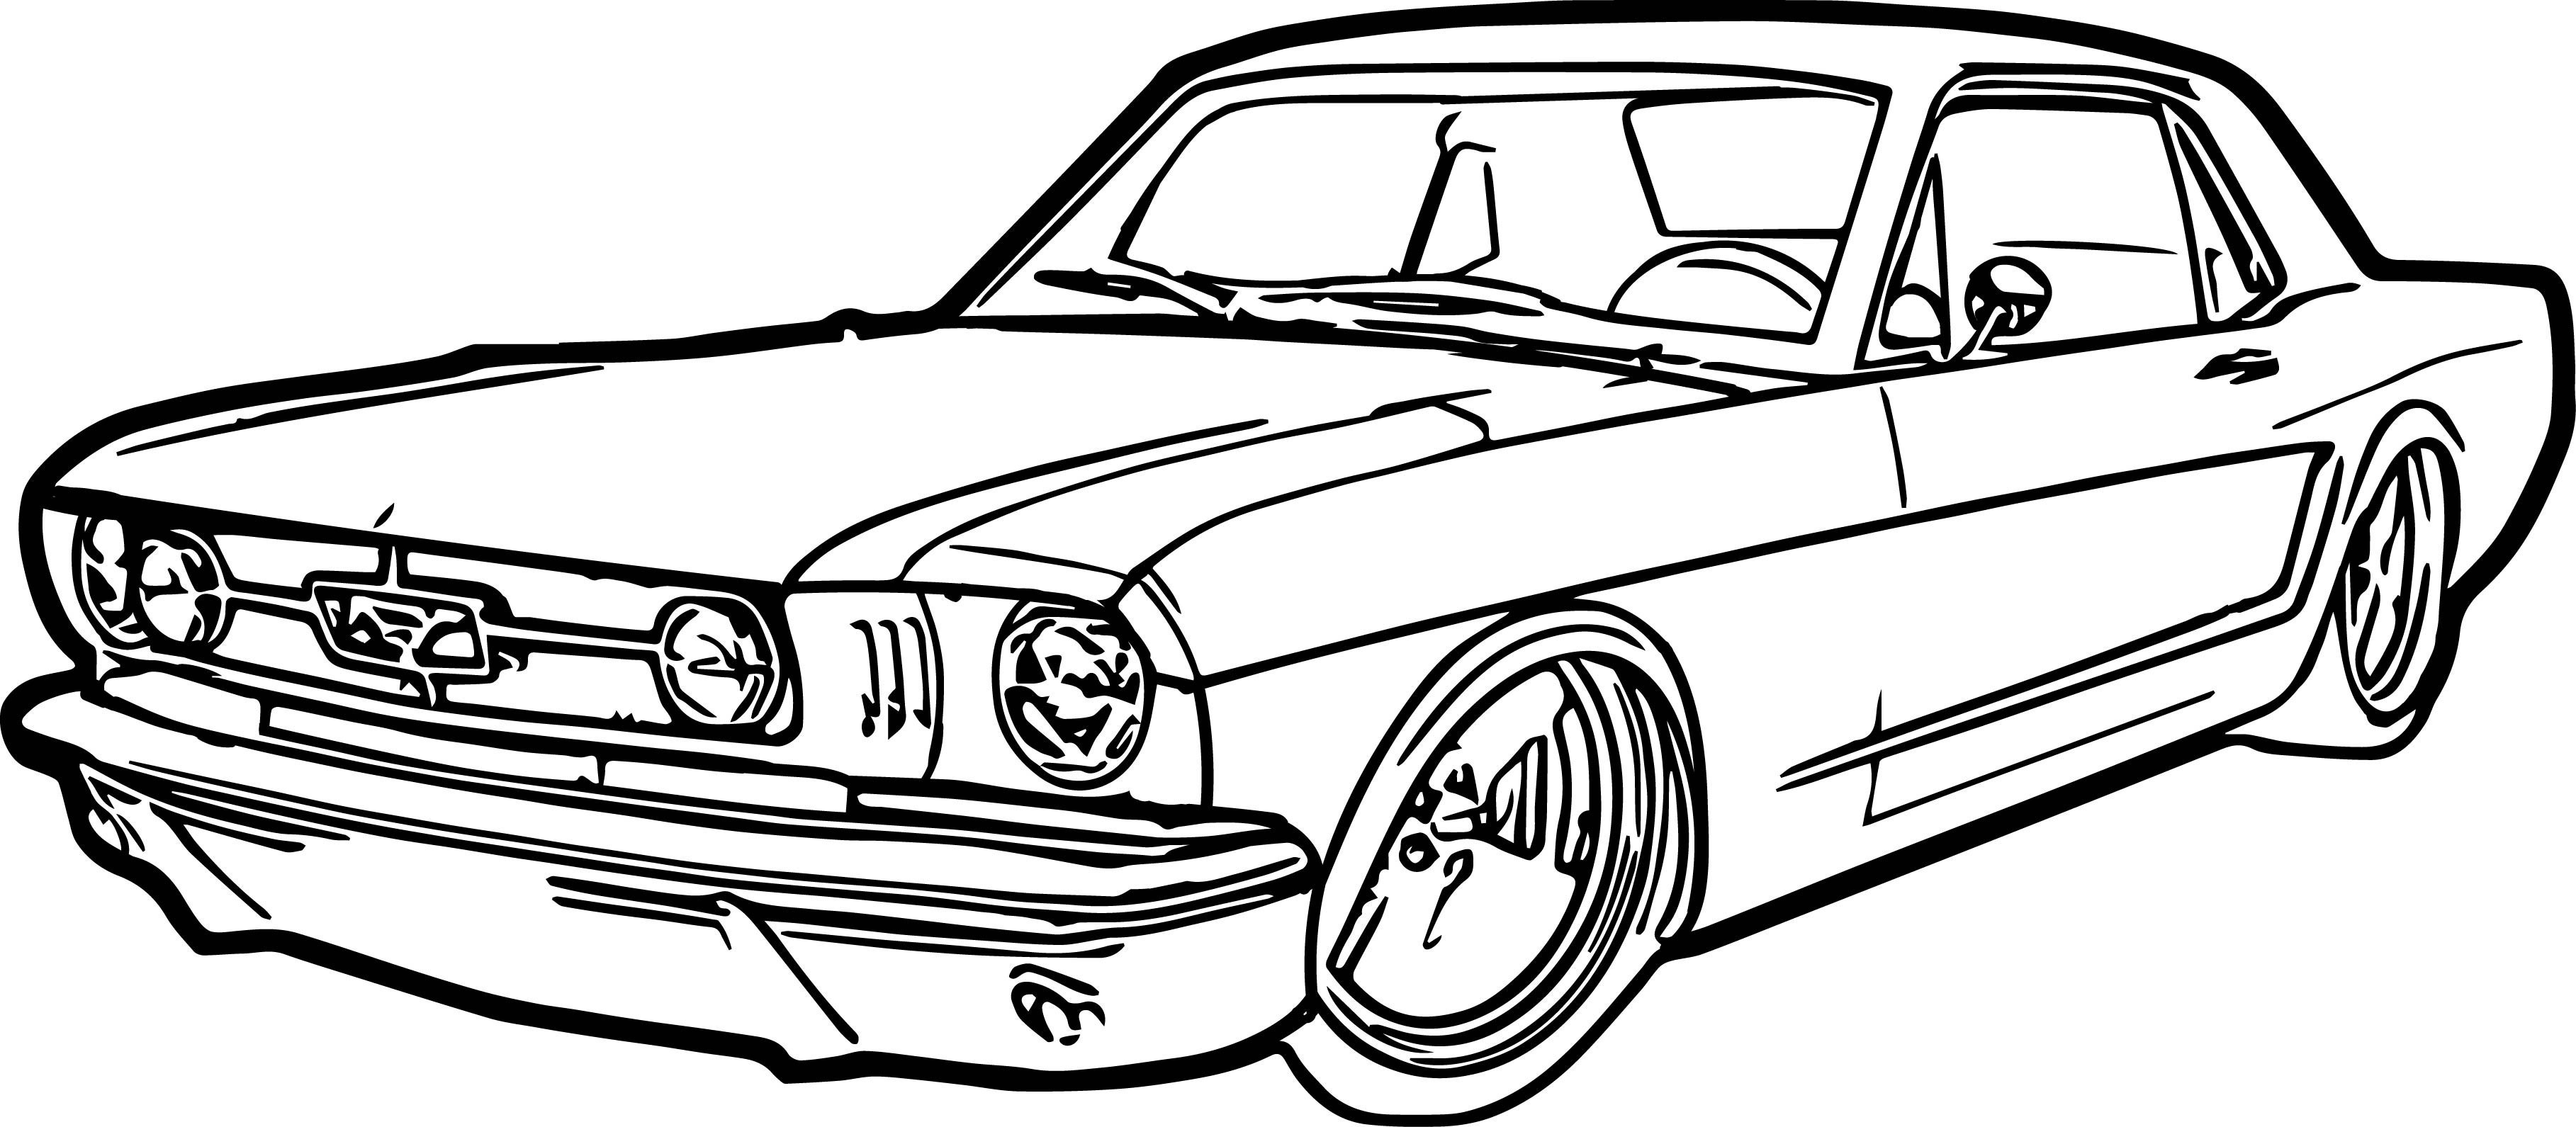 Sports Car Coloring Pages Cars Coloring Pages Printable Dapmalaysia